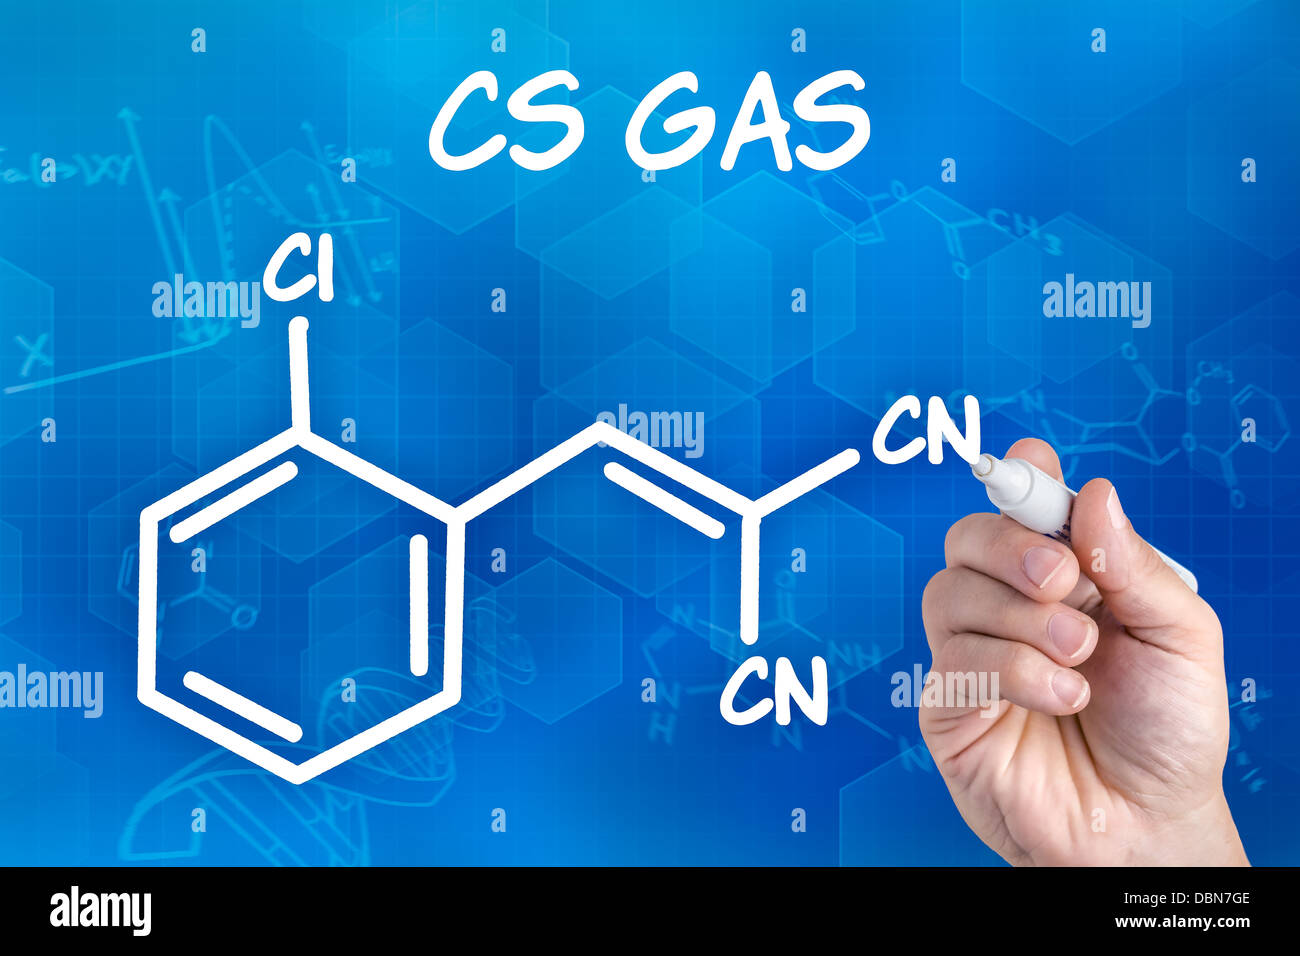 hand with pen drawing the chemical formula of CS Gas - Stock Image